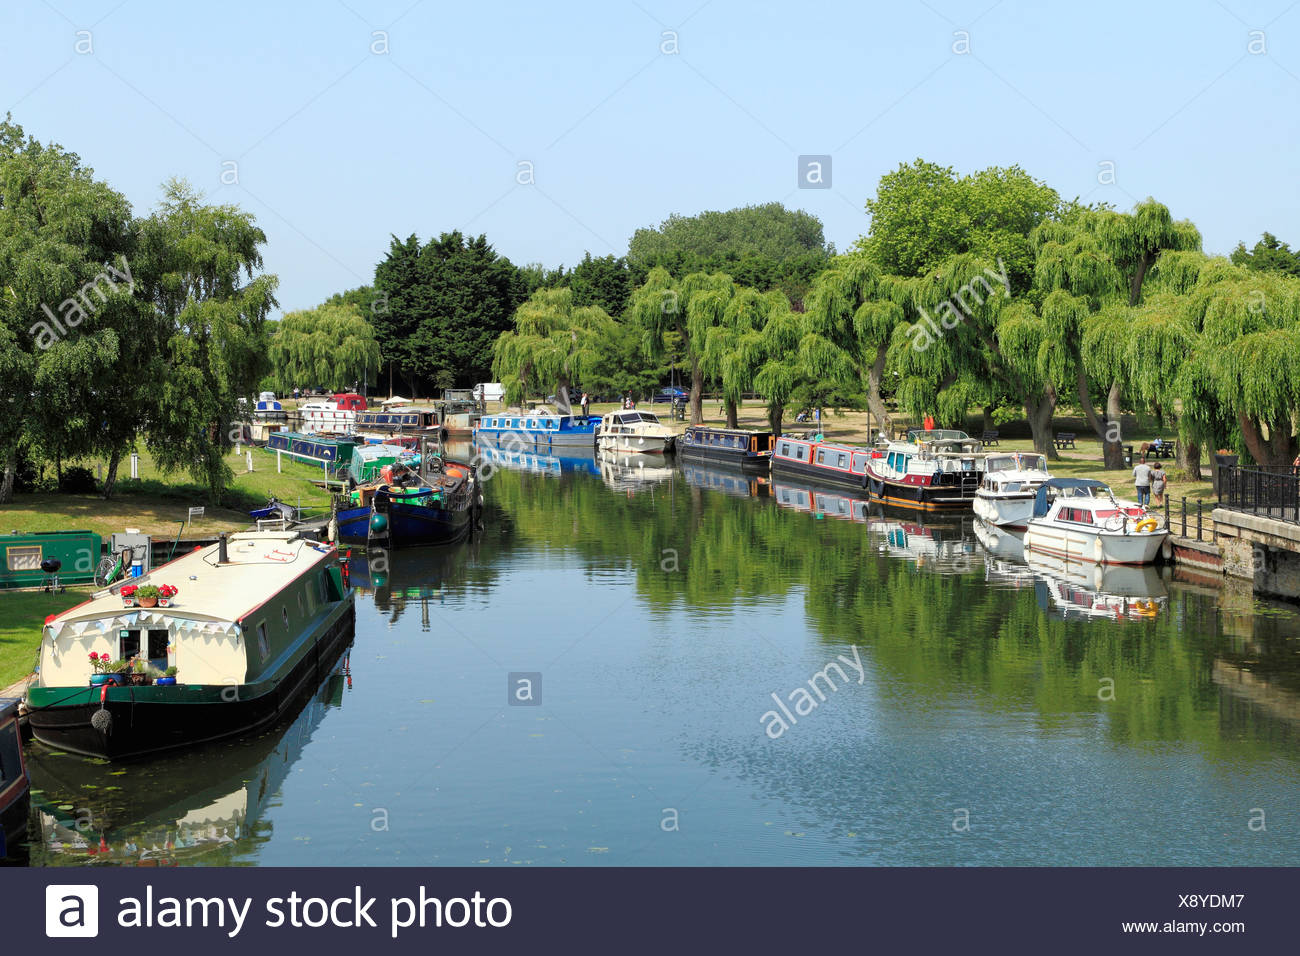 Ely, River Ouse, barges and boats,  English rivers riverside pubs inns pub, Cambridgeshire England UK - Stock Image